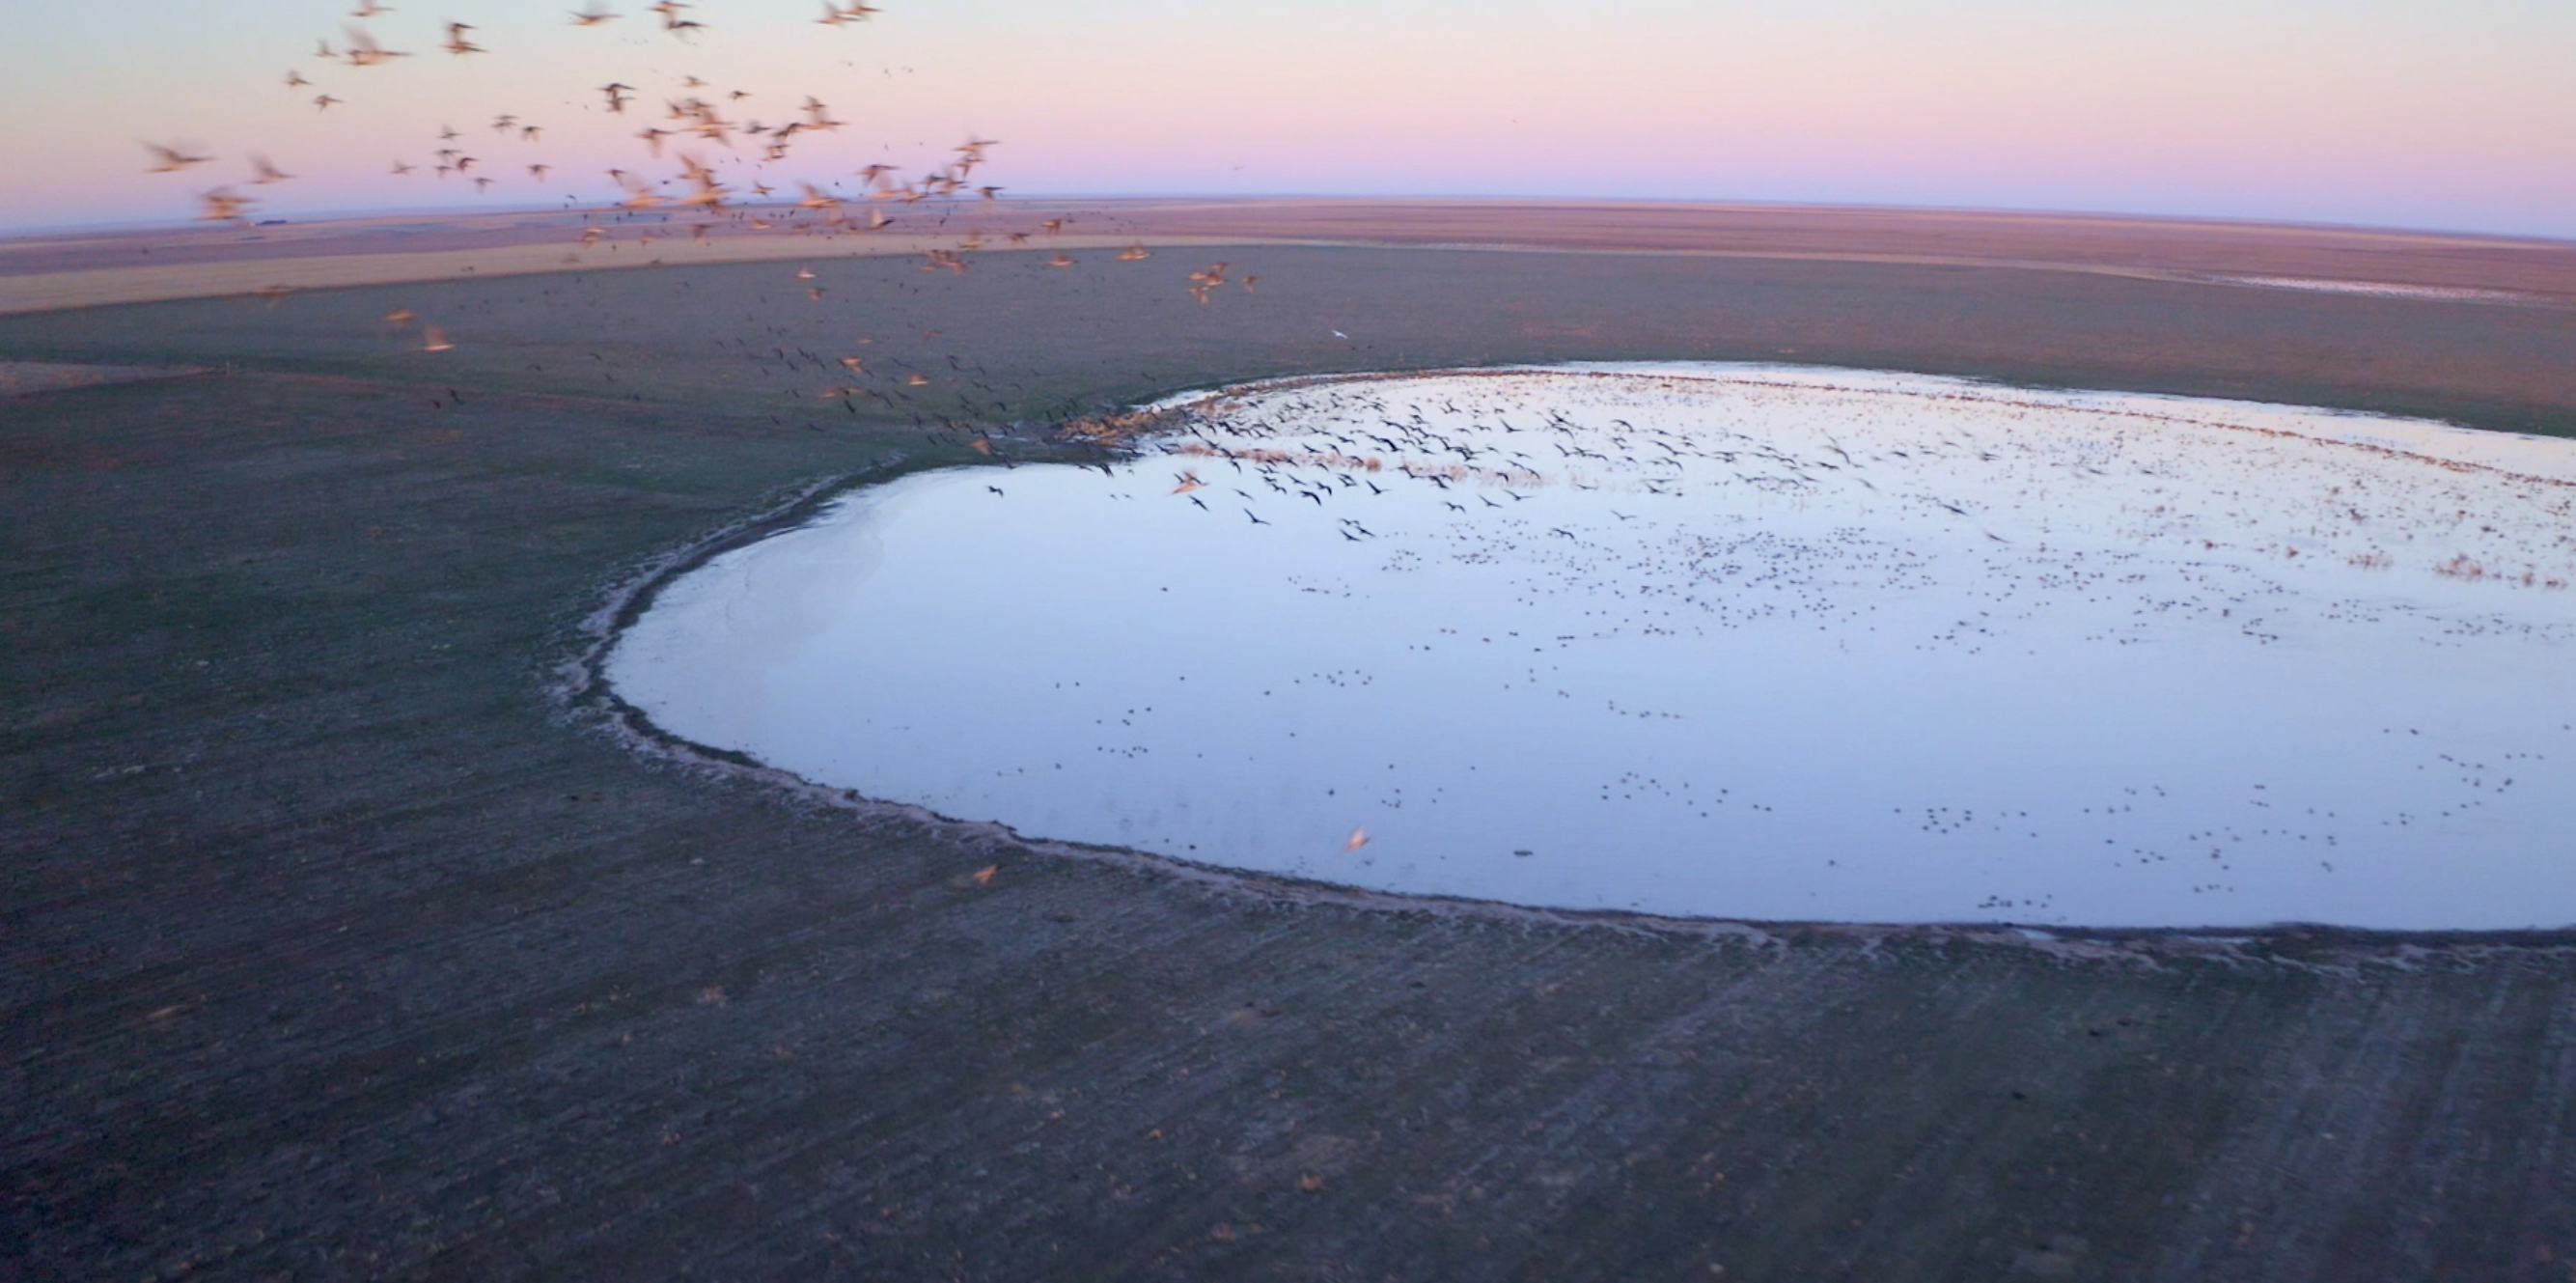 Conservation project aims to restore Ogallala Aquifer through naturally occurring landforms